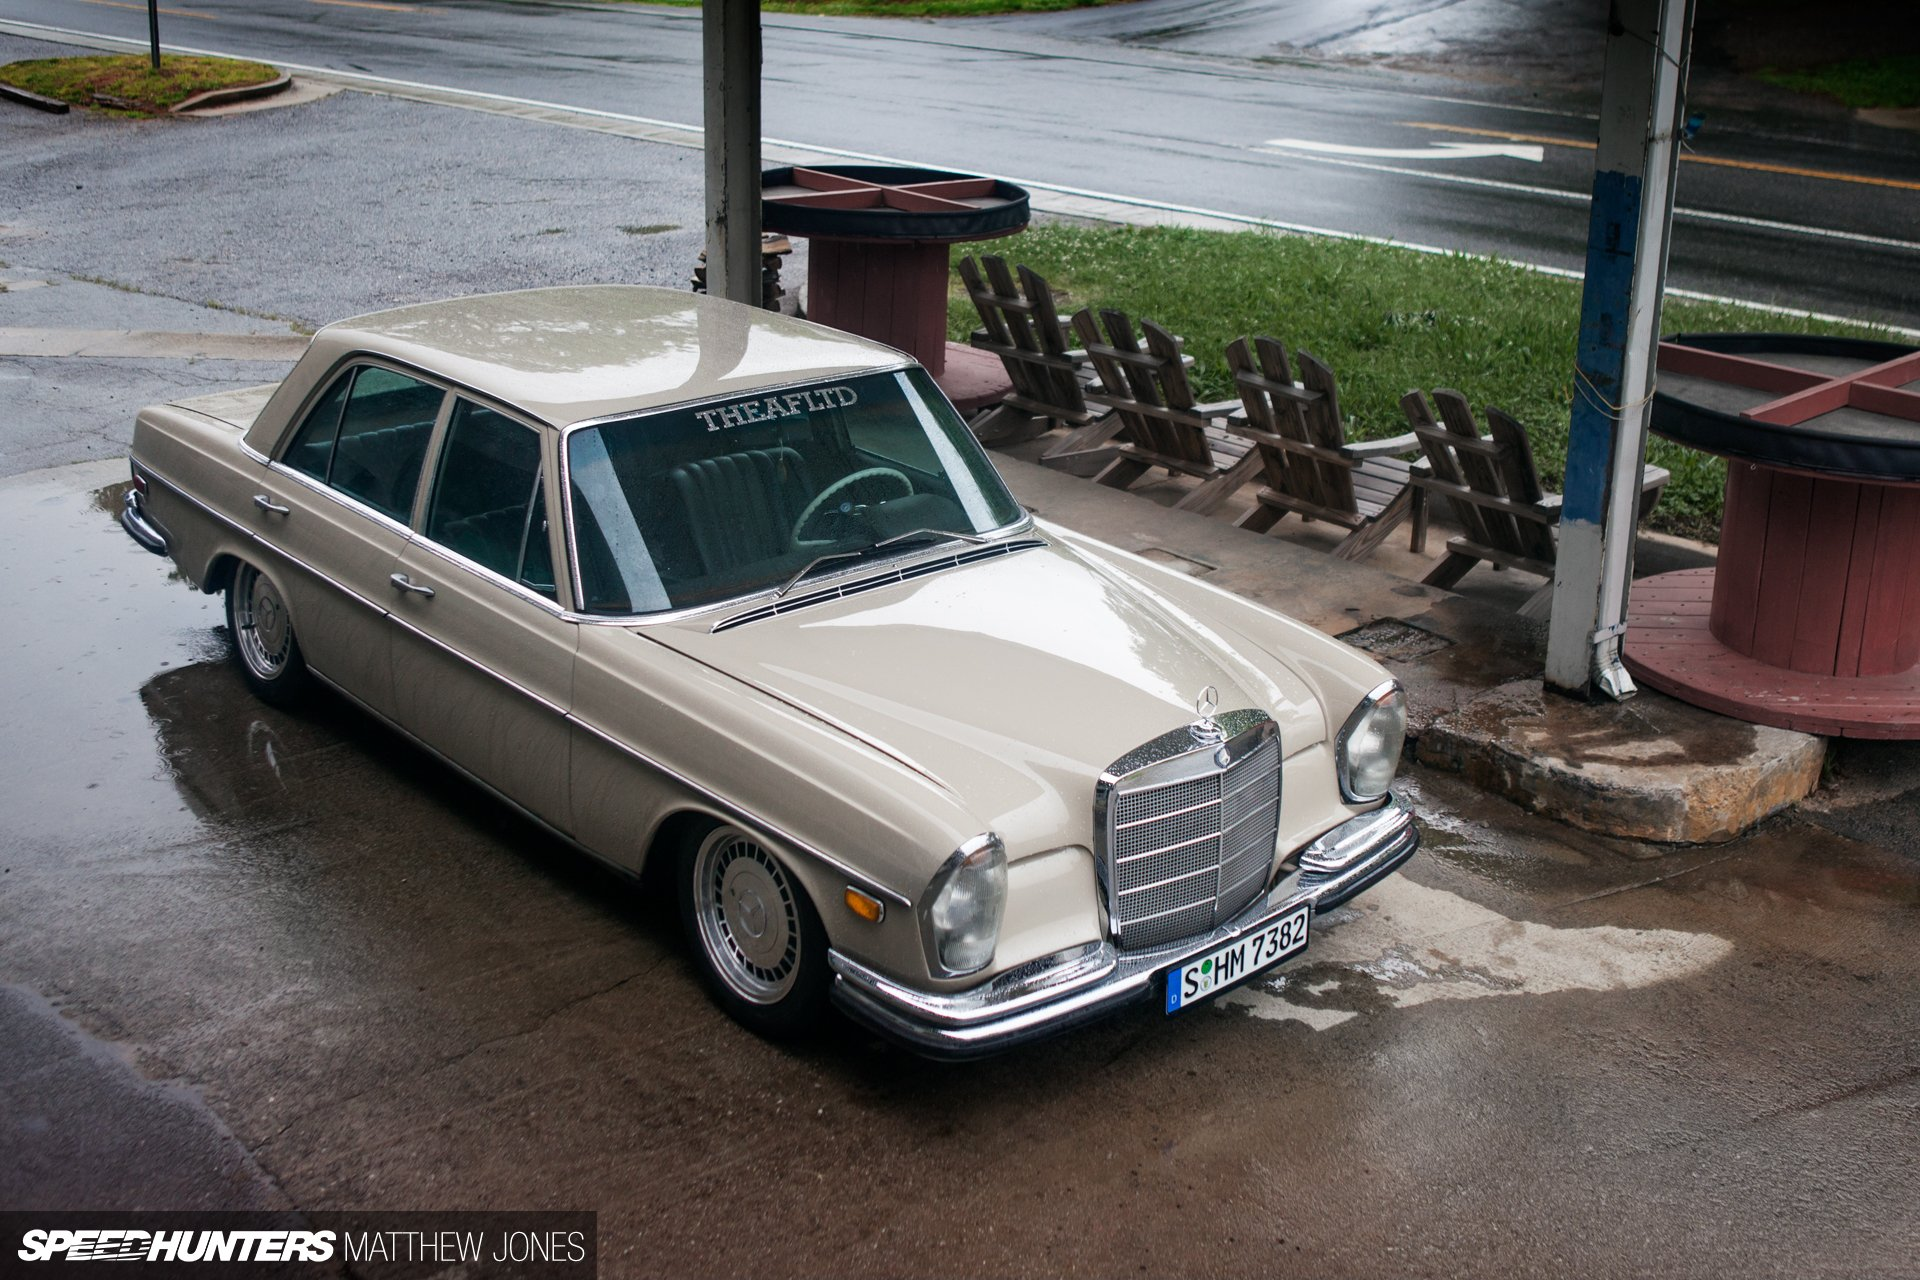 Maxresdefault moreover Color also C Cf B D E B C C Ba likewise  in addition Sl Class. on 1969 280s mercedes benz